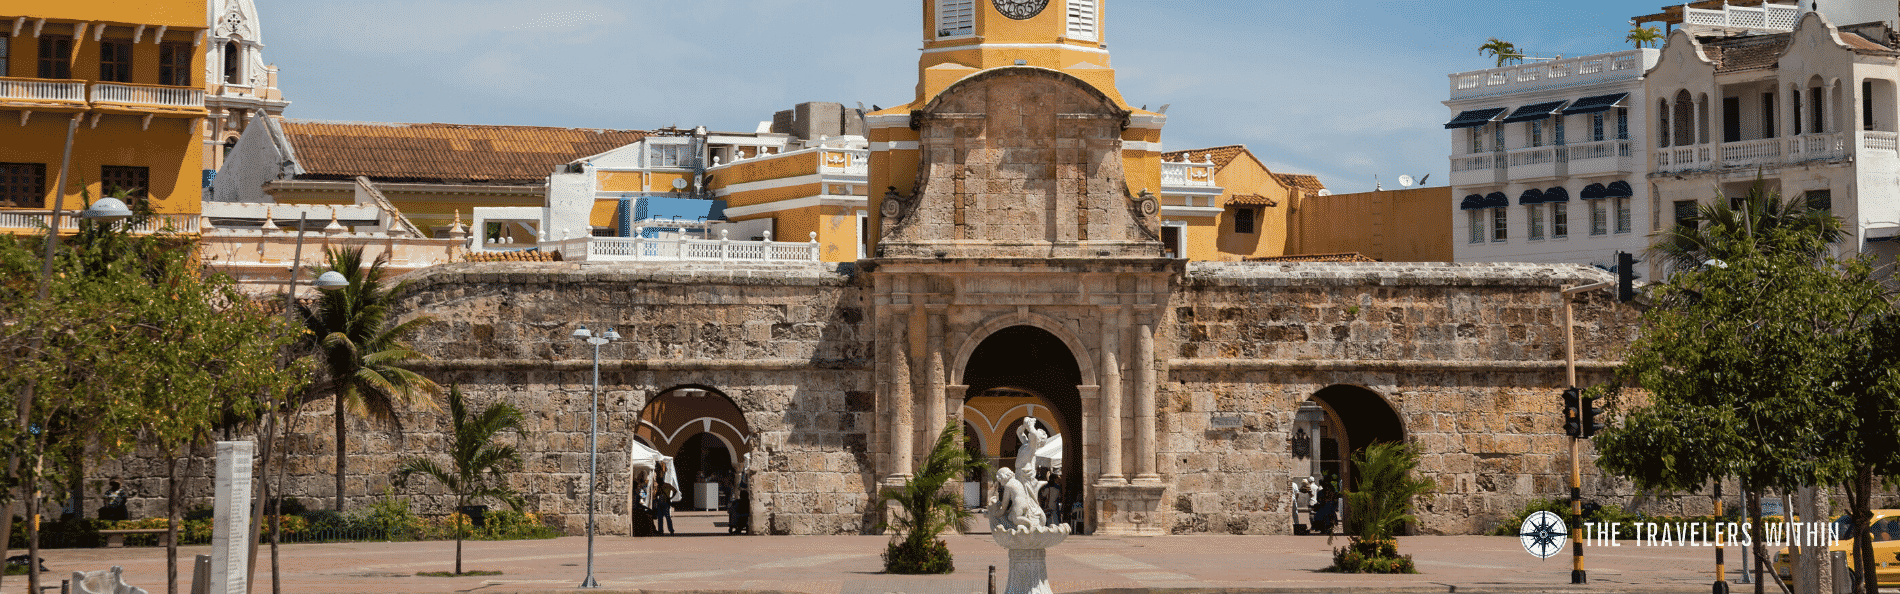 Cartagena Colombia Travel